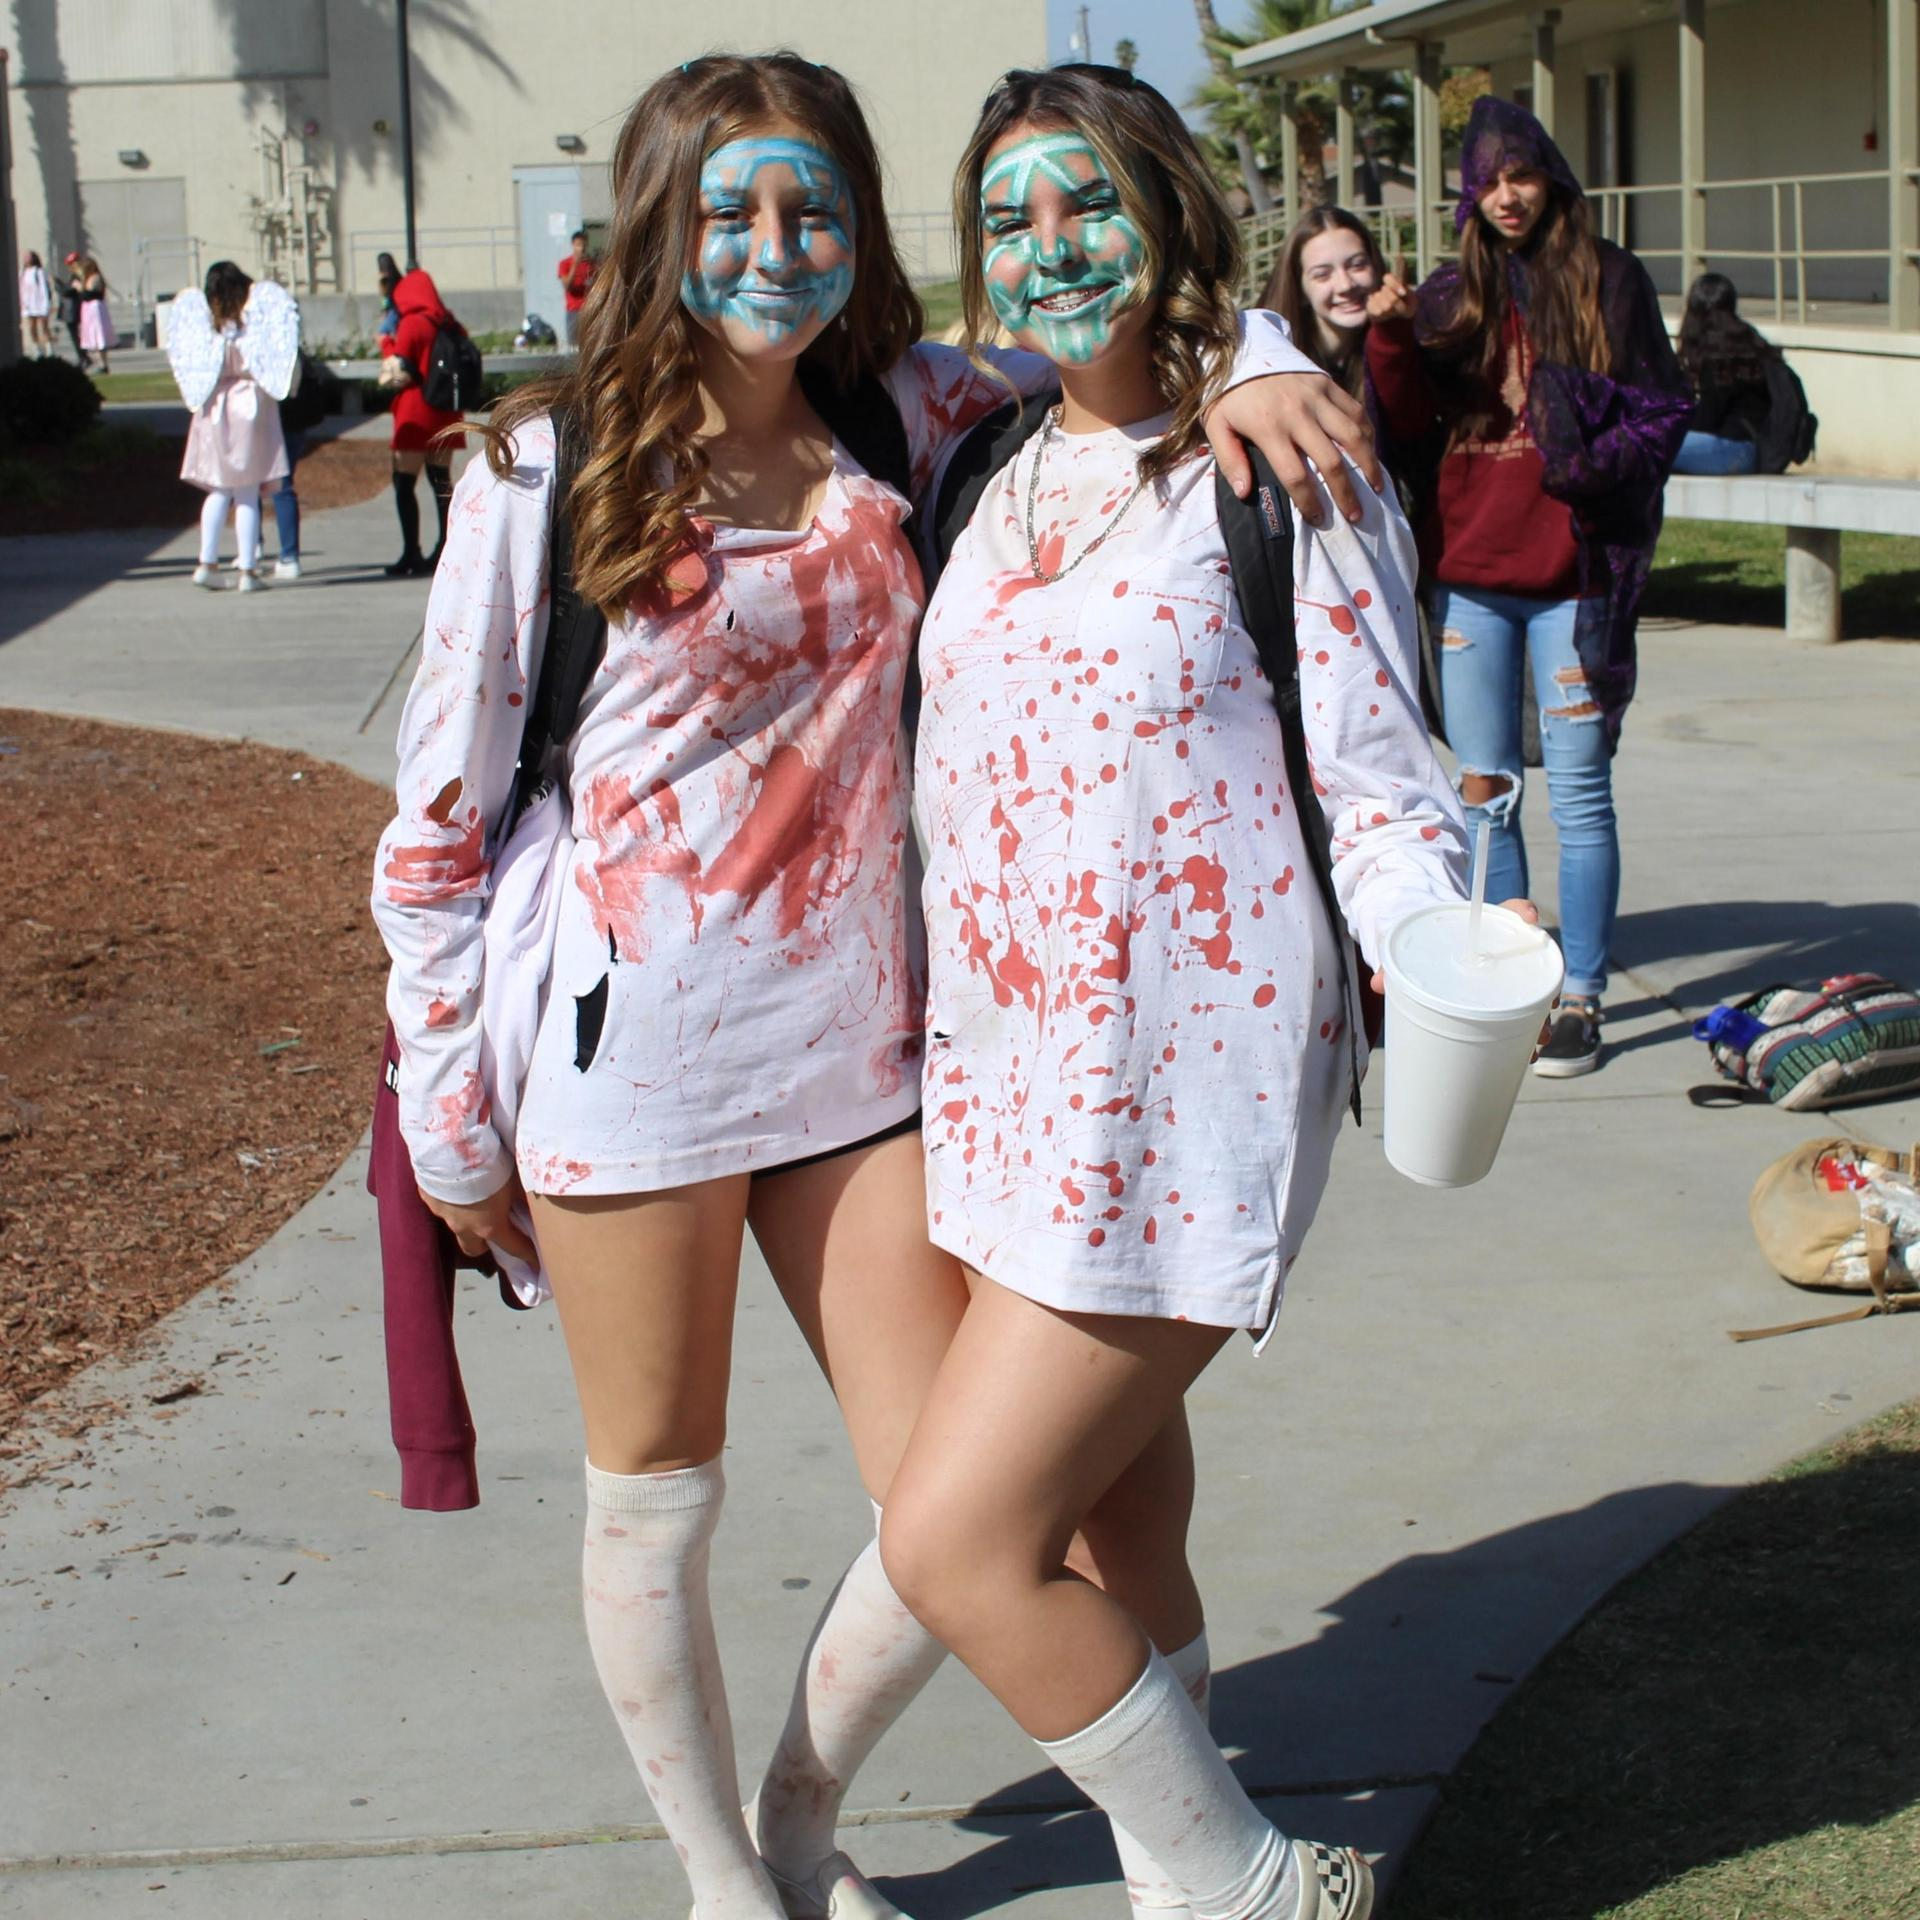 Evelen Sanchez and Madalyn Etharidge as purge with Lilly Sandlin and Josephine Moore